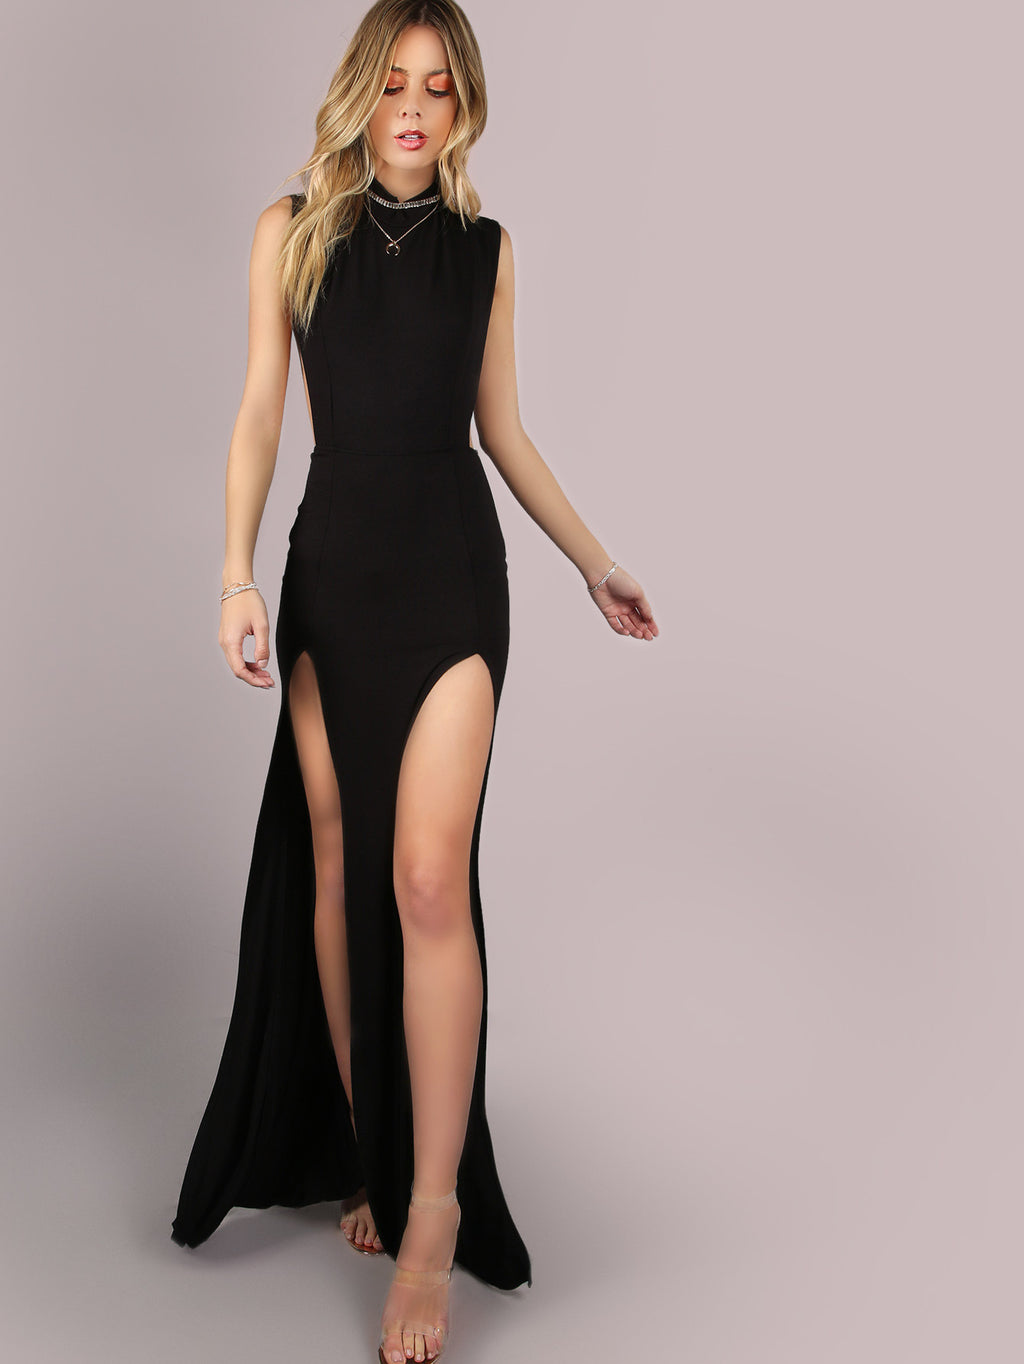 Elle Black Maxi Dress